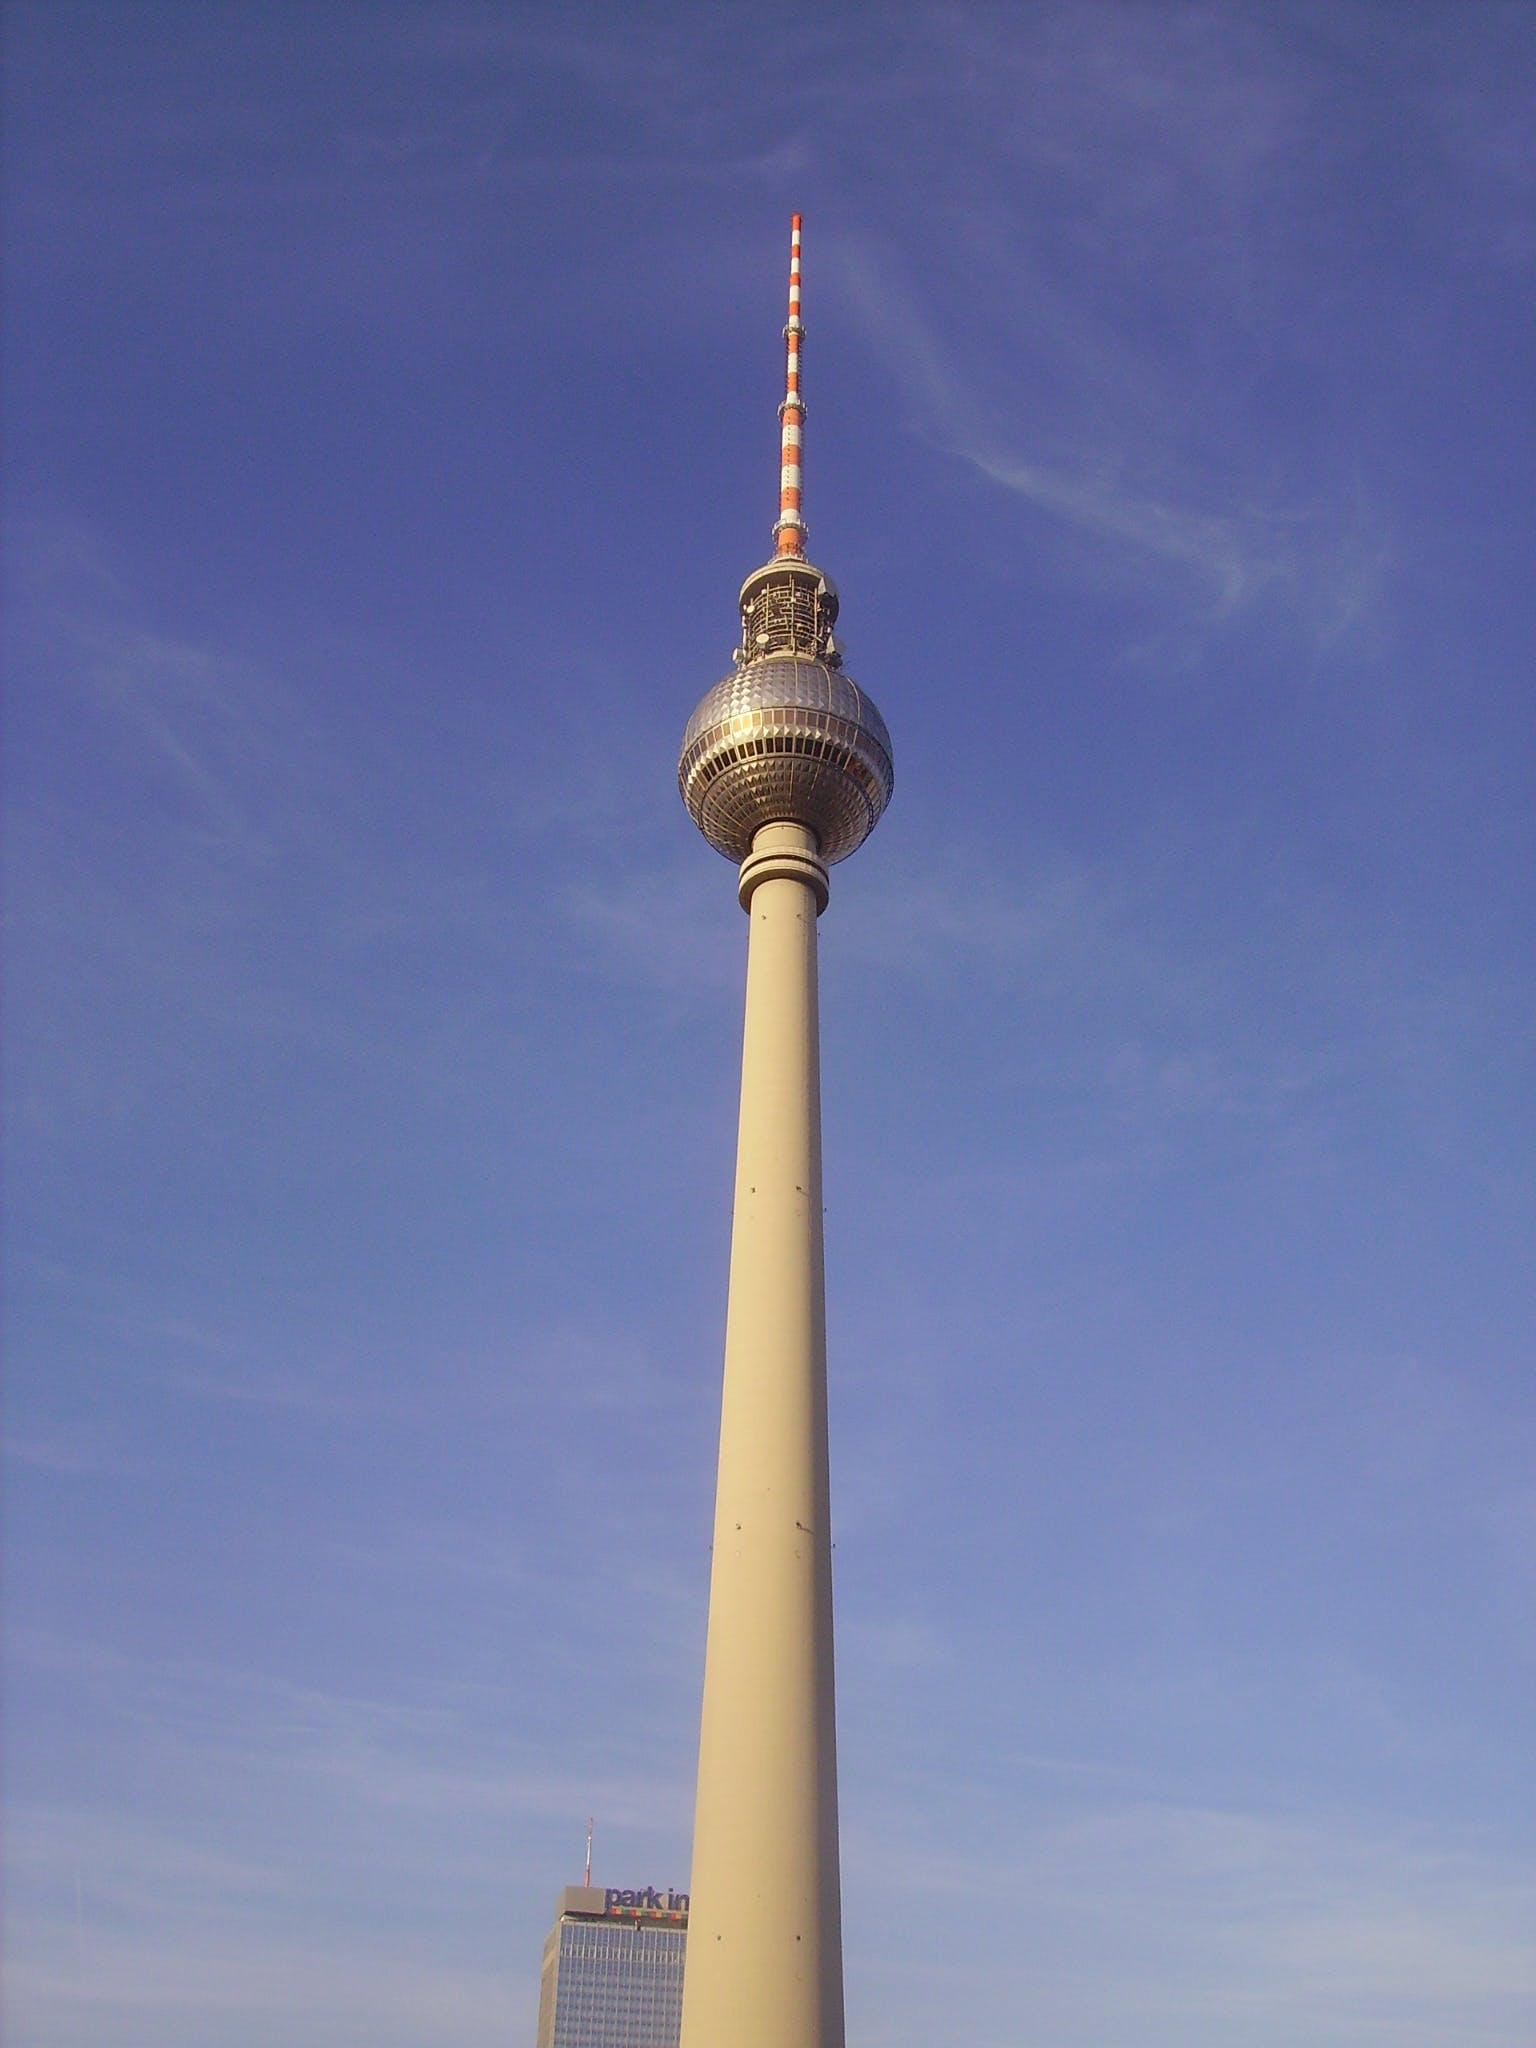 Free stock photo of landmark, building, high, berlin